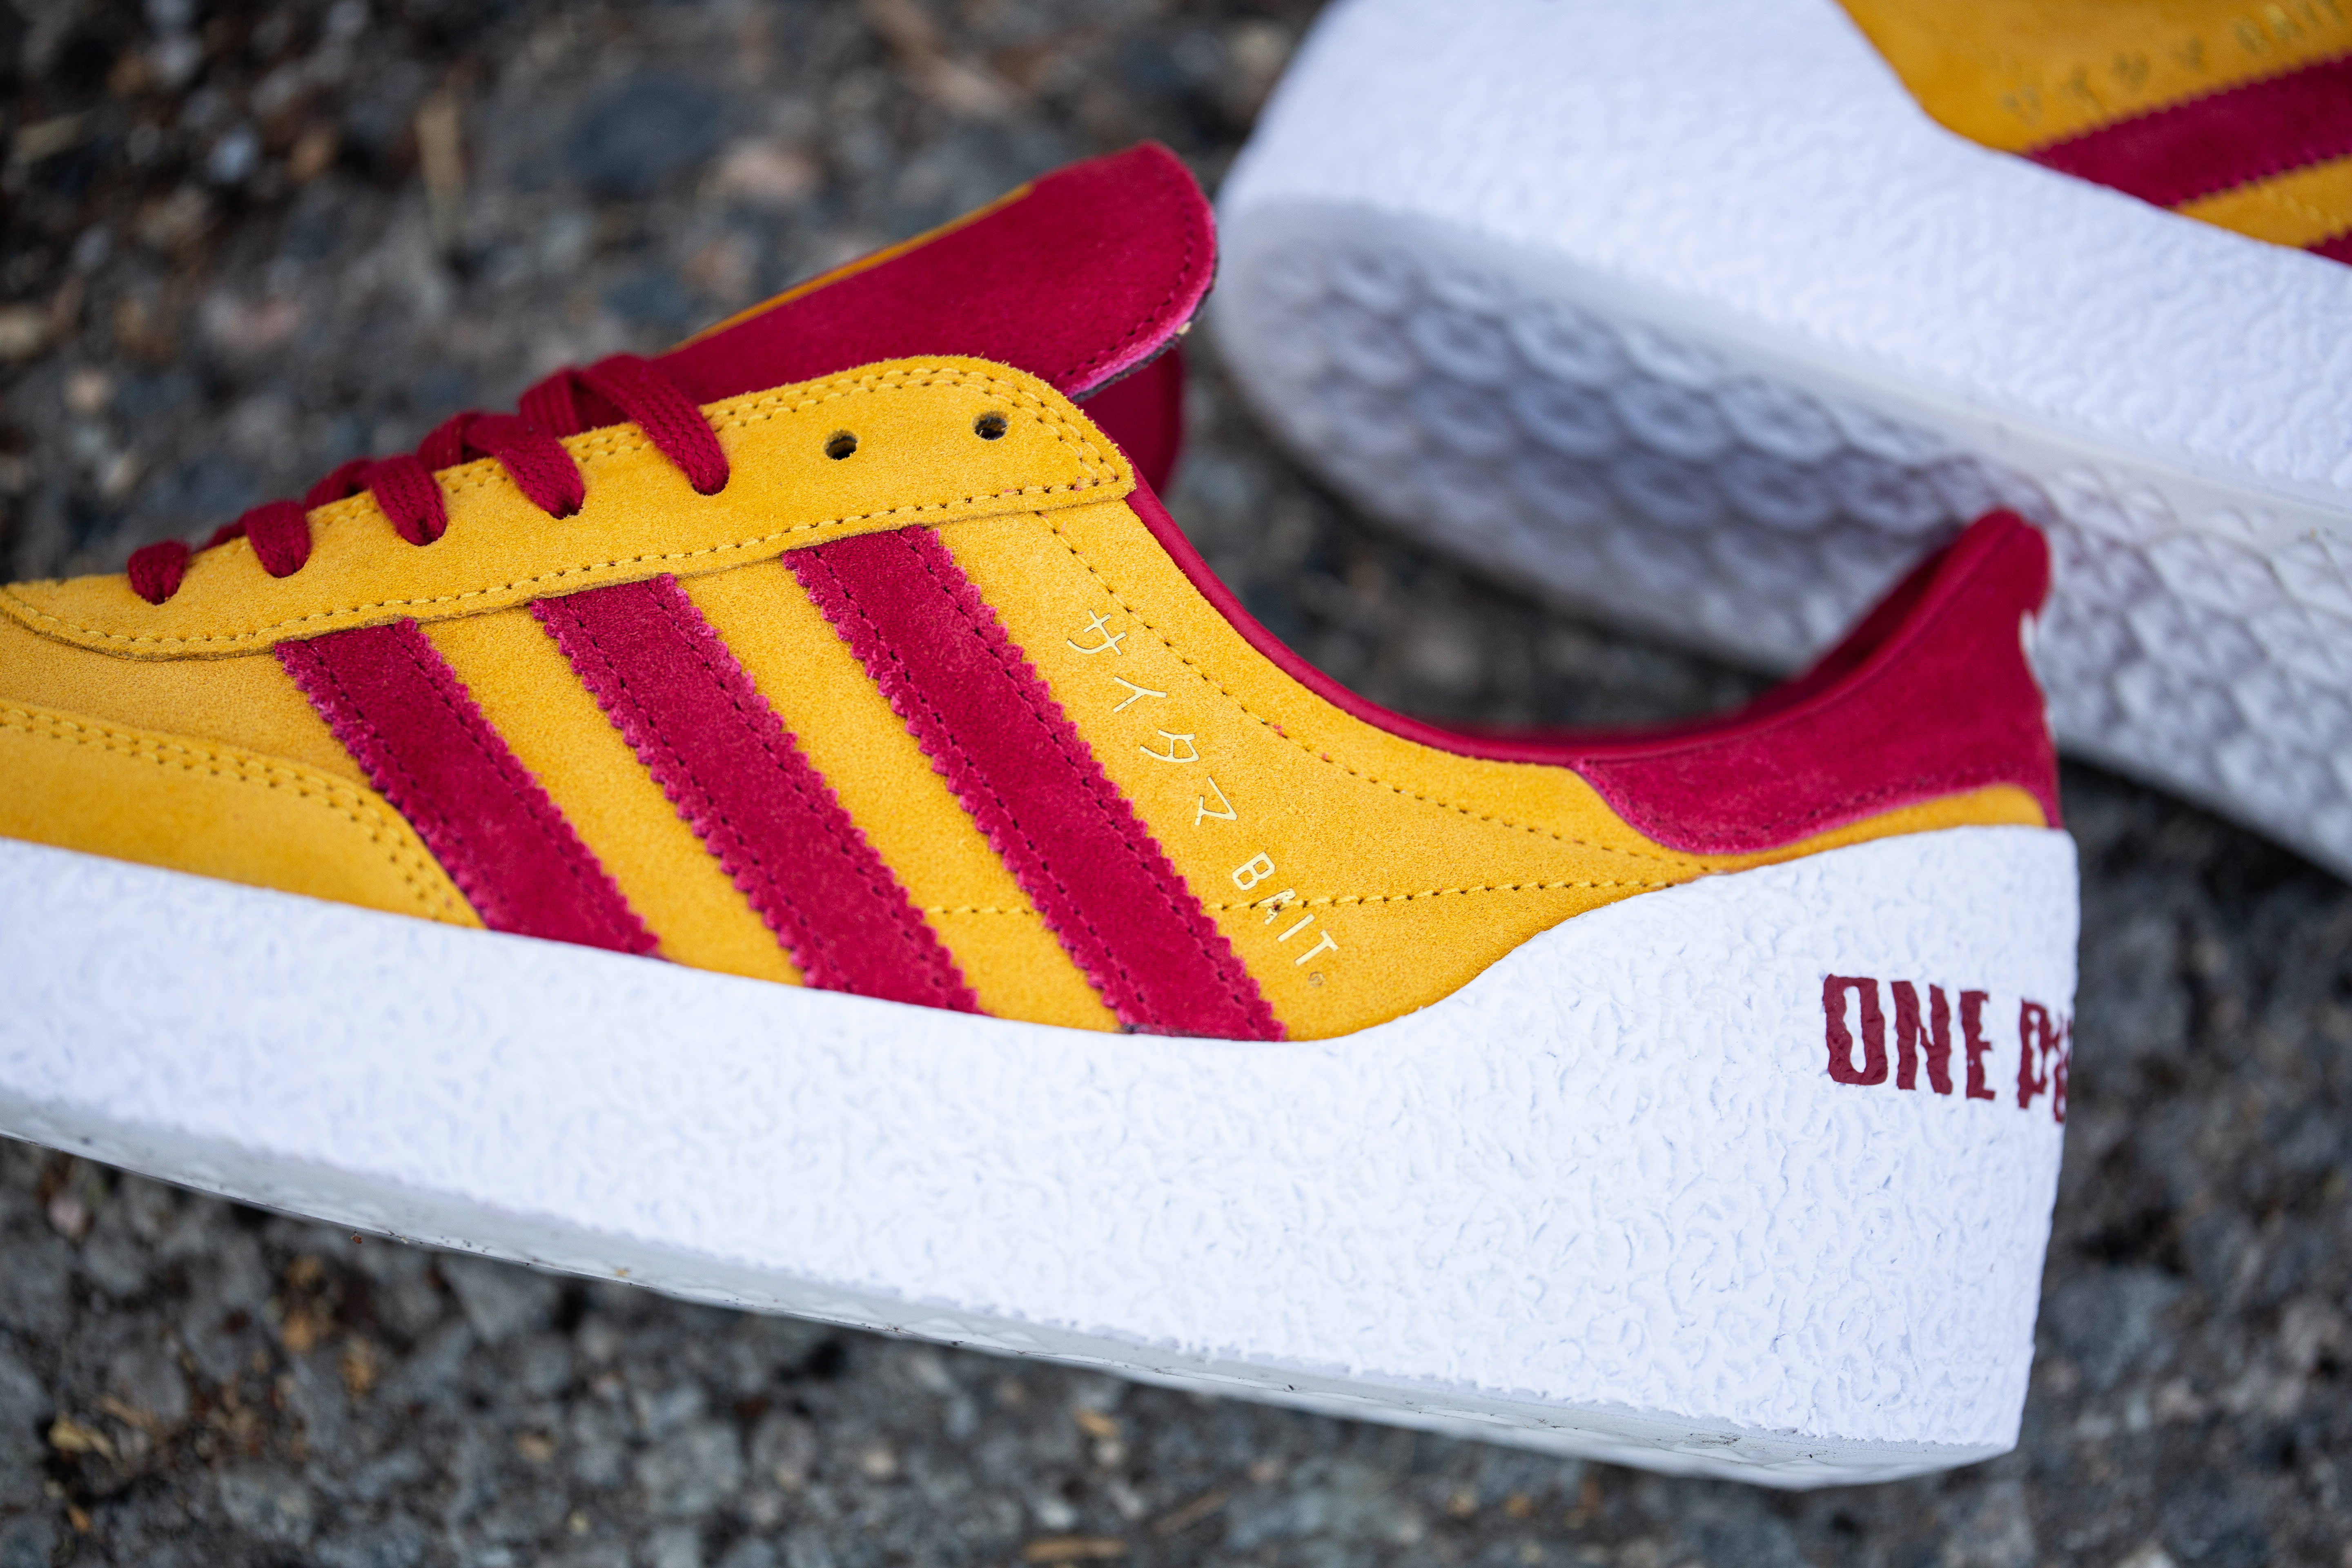 Bait x One Punch Man x Adidas Montreal Side